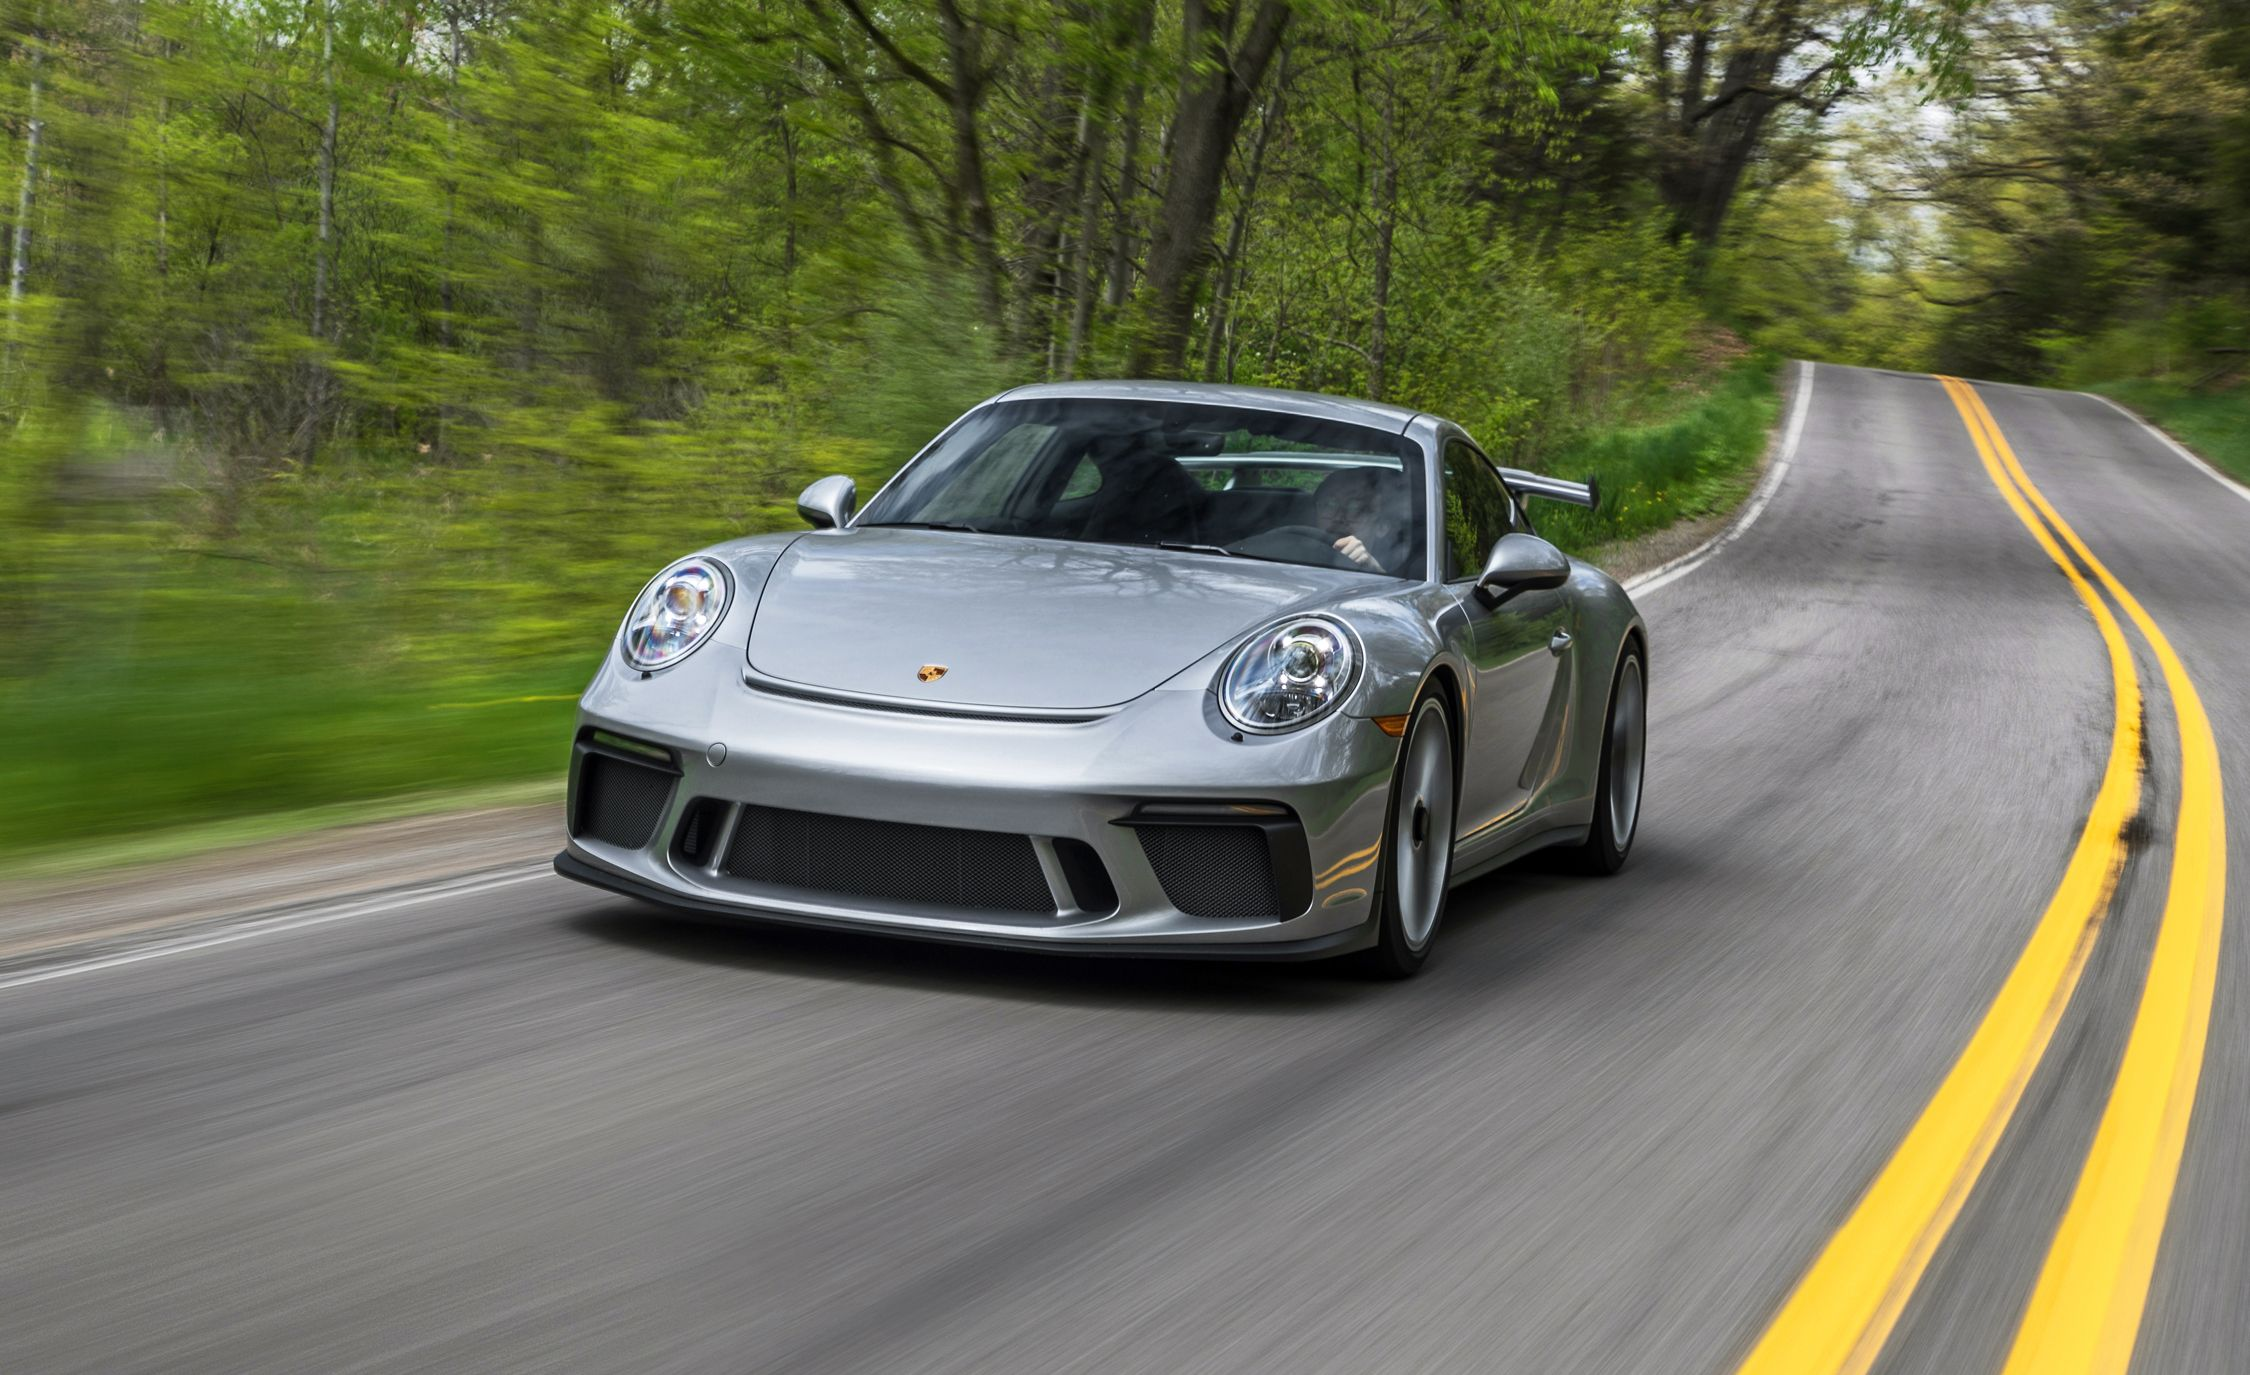 porsche 911 gt3 gt3 rs reviews porsche 911 gt3 gt3 rs price photos and specs car and. Black Bedroom Furniture Sets. Home Design Ideas